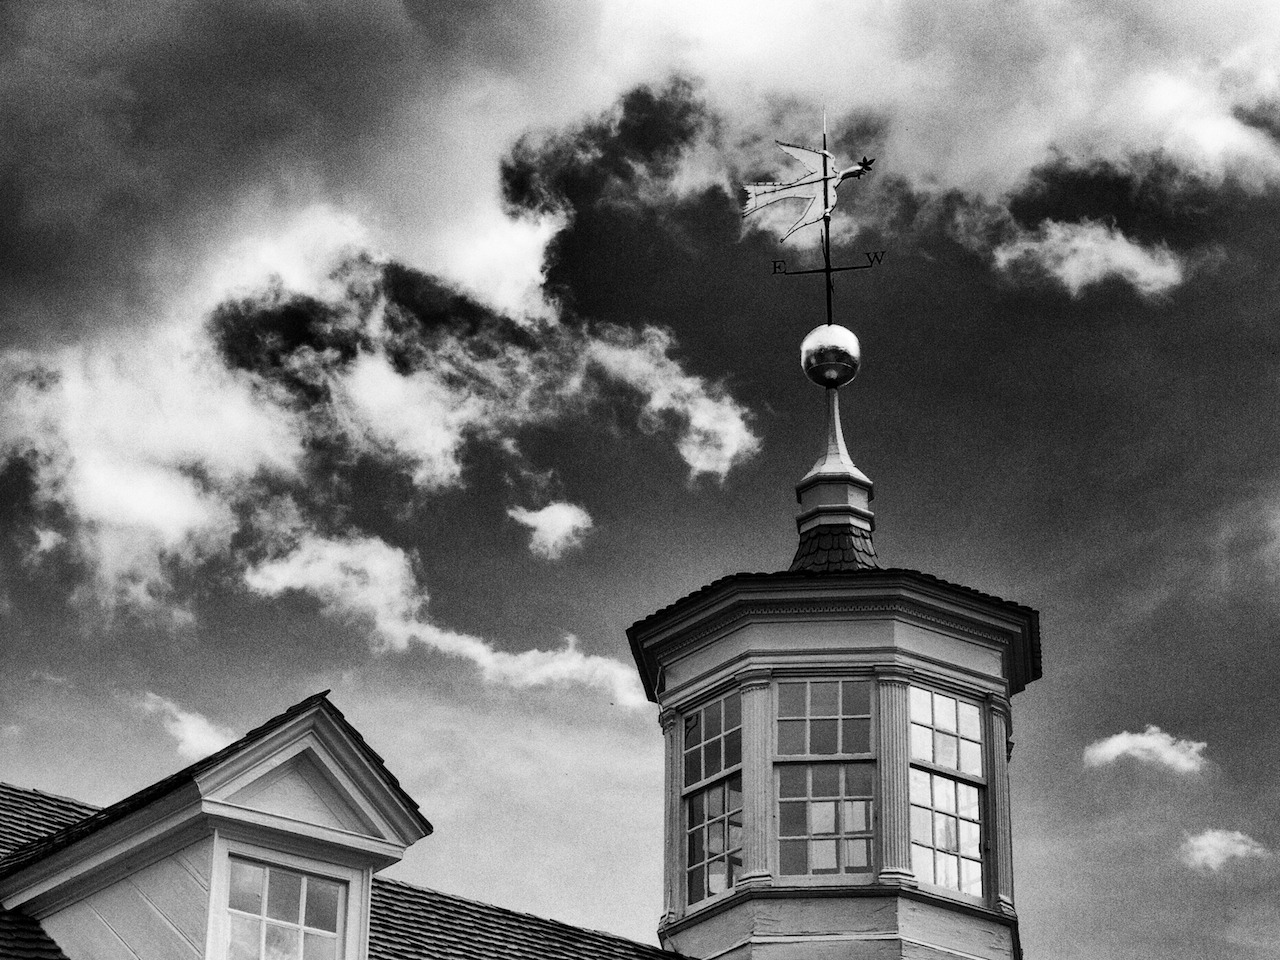 The peace dove weathervane on top of George Washington's mansion on Mount Vernon, VA. May 1st, 2012.